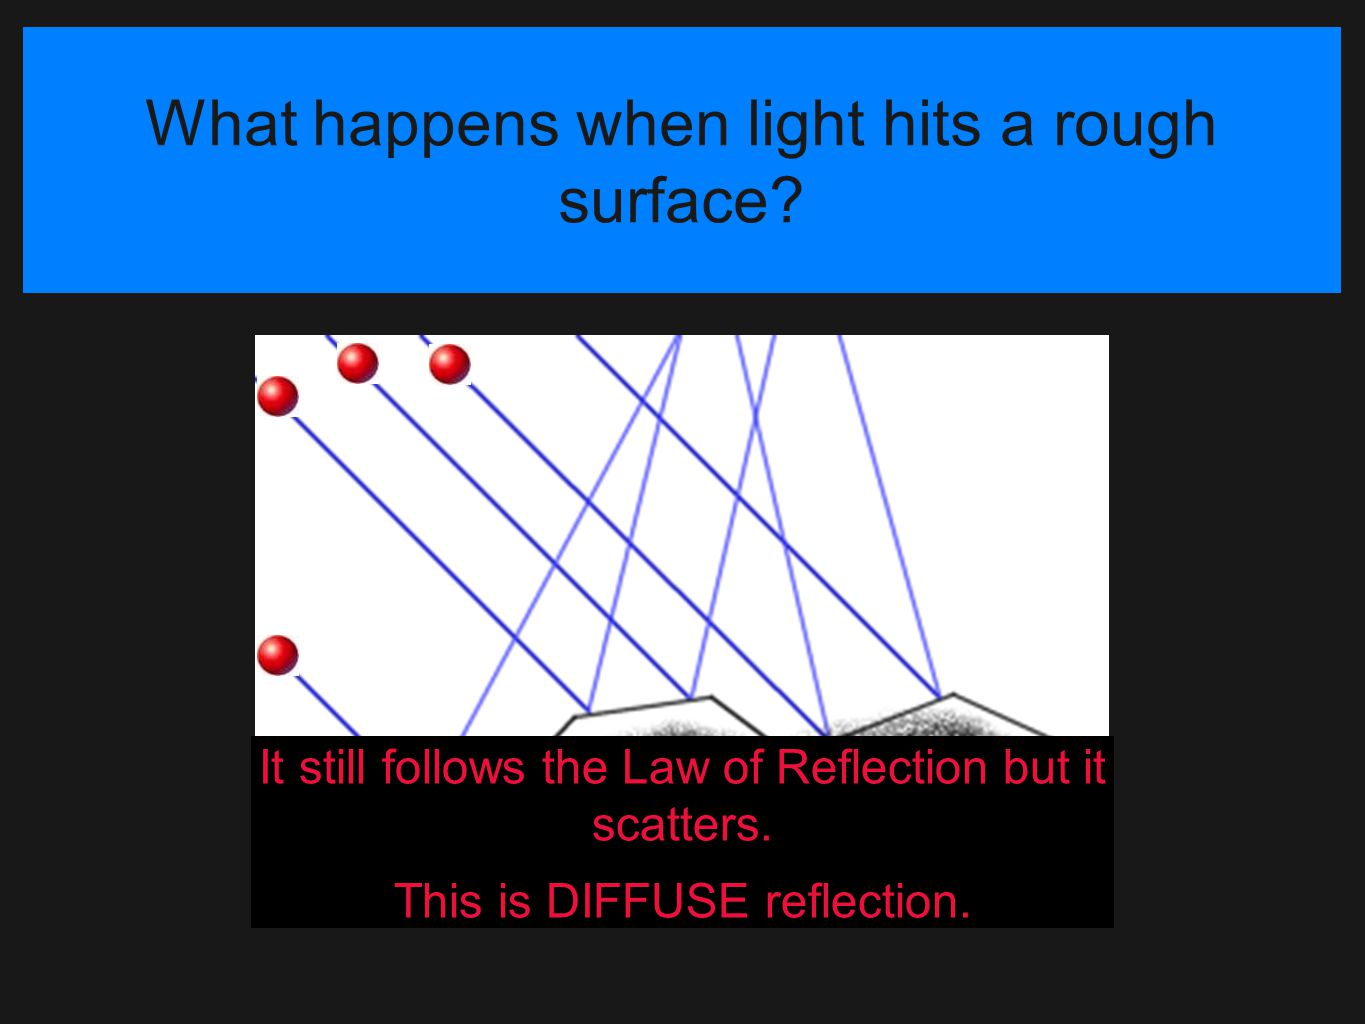 What happens when light hits a rough surface